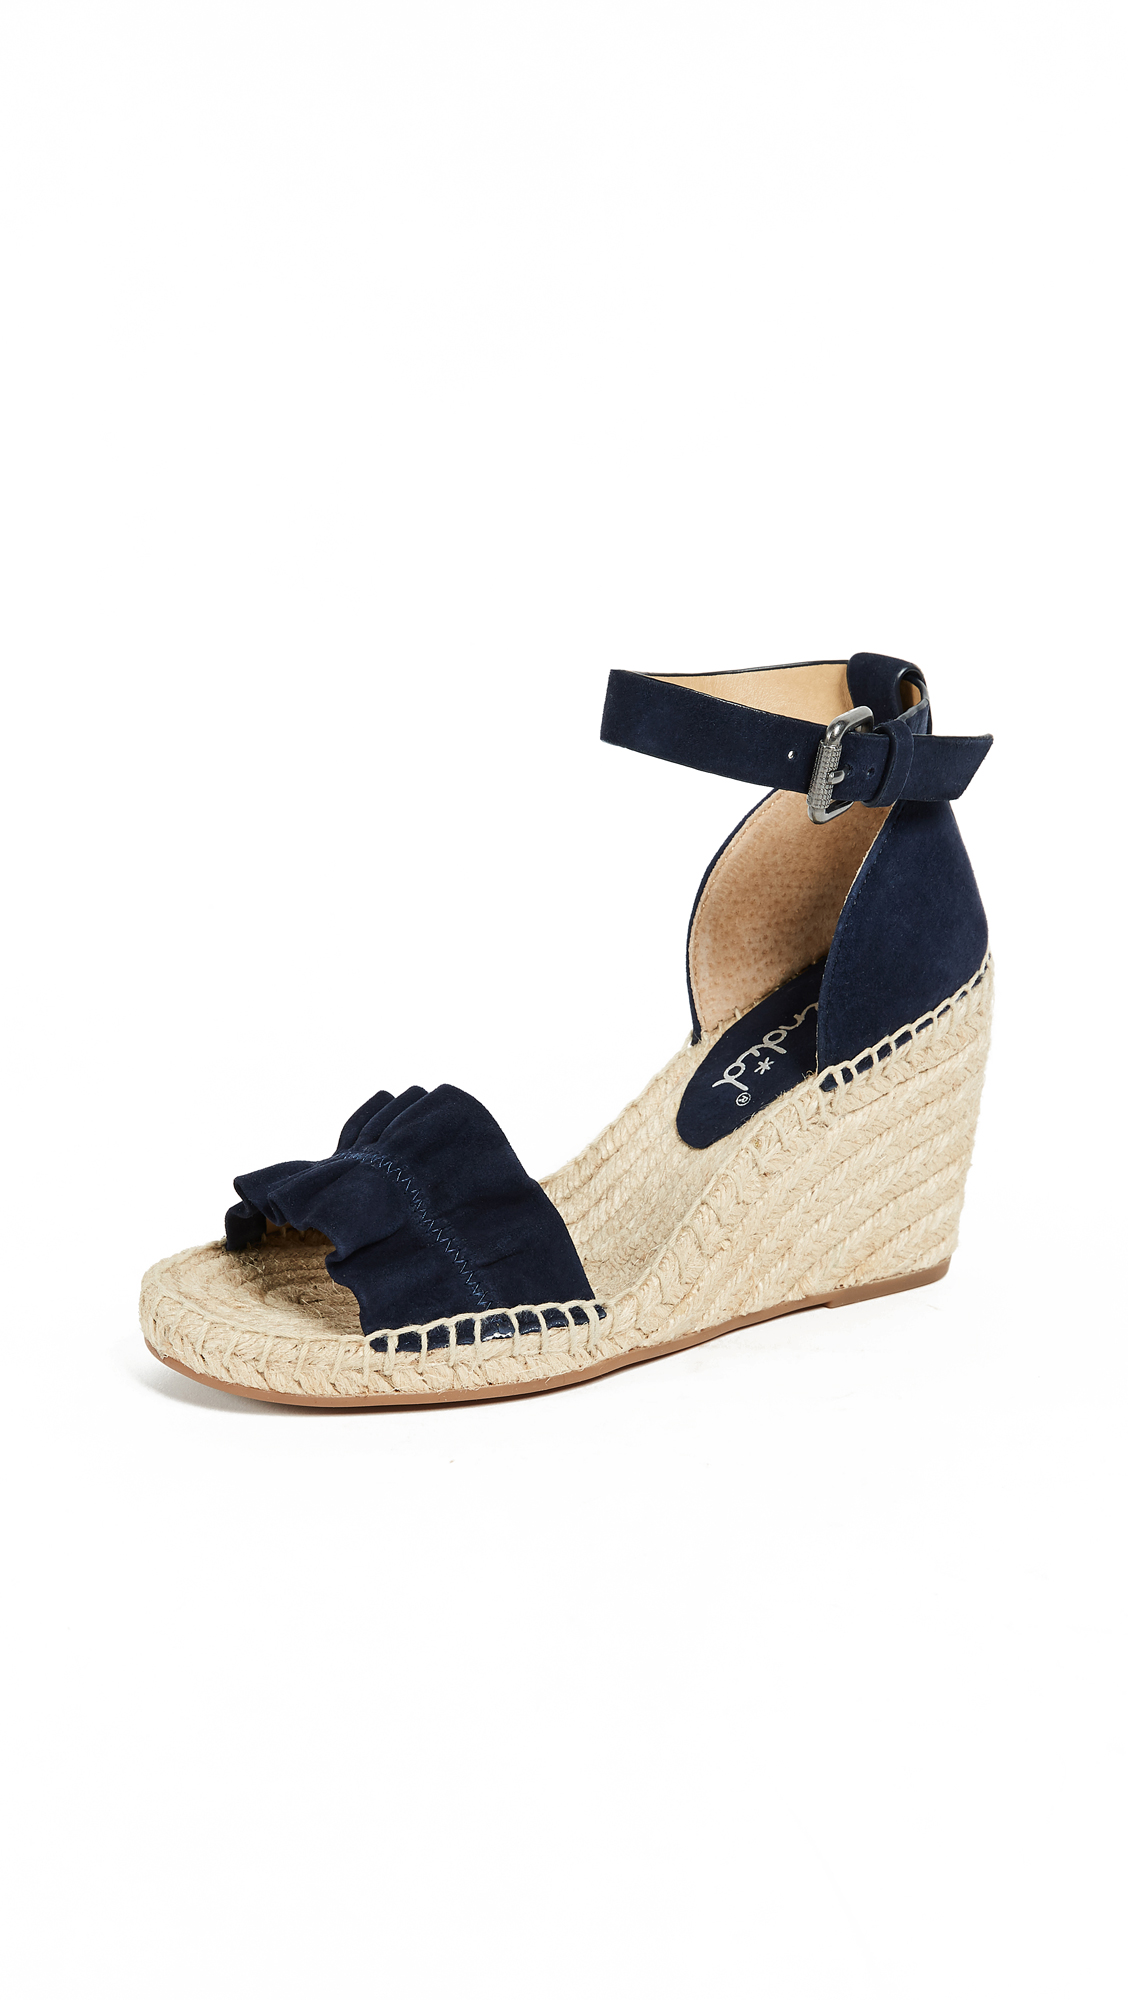 Splendid Bedford Wedge Espadrilles - Navy